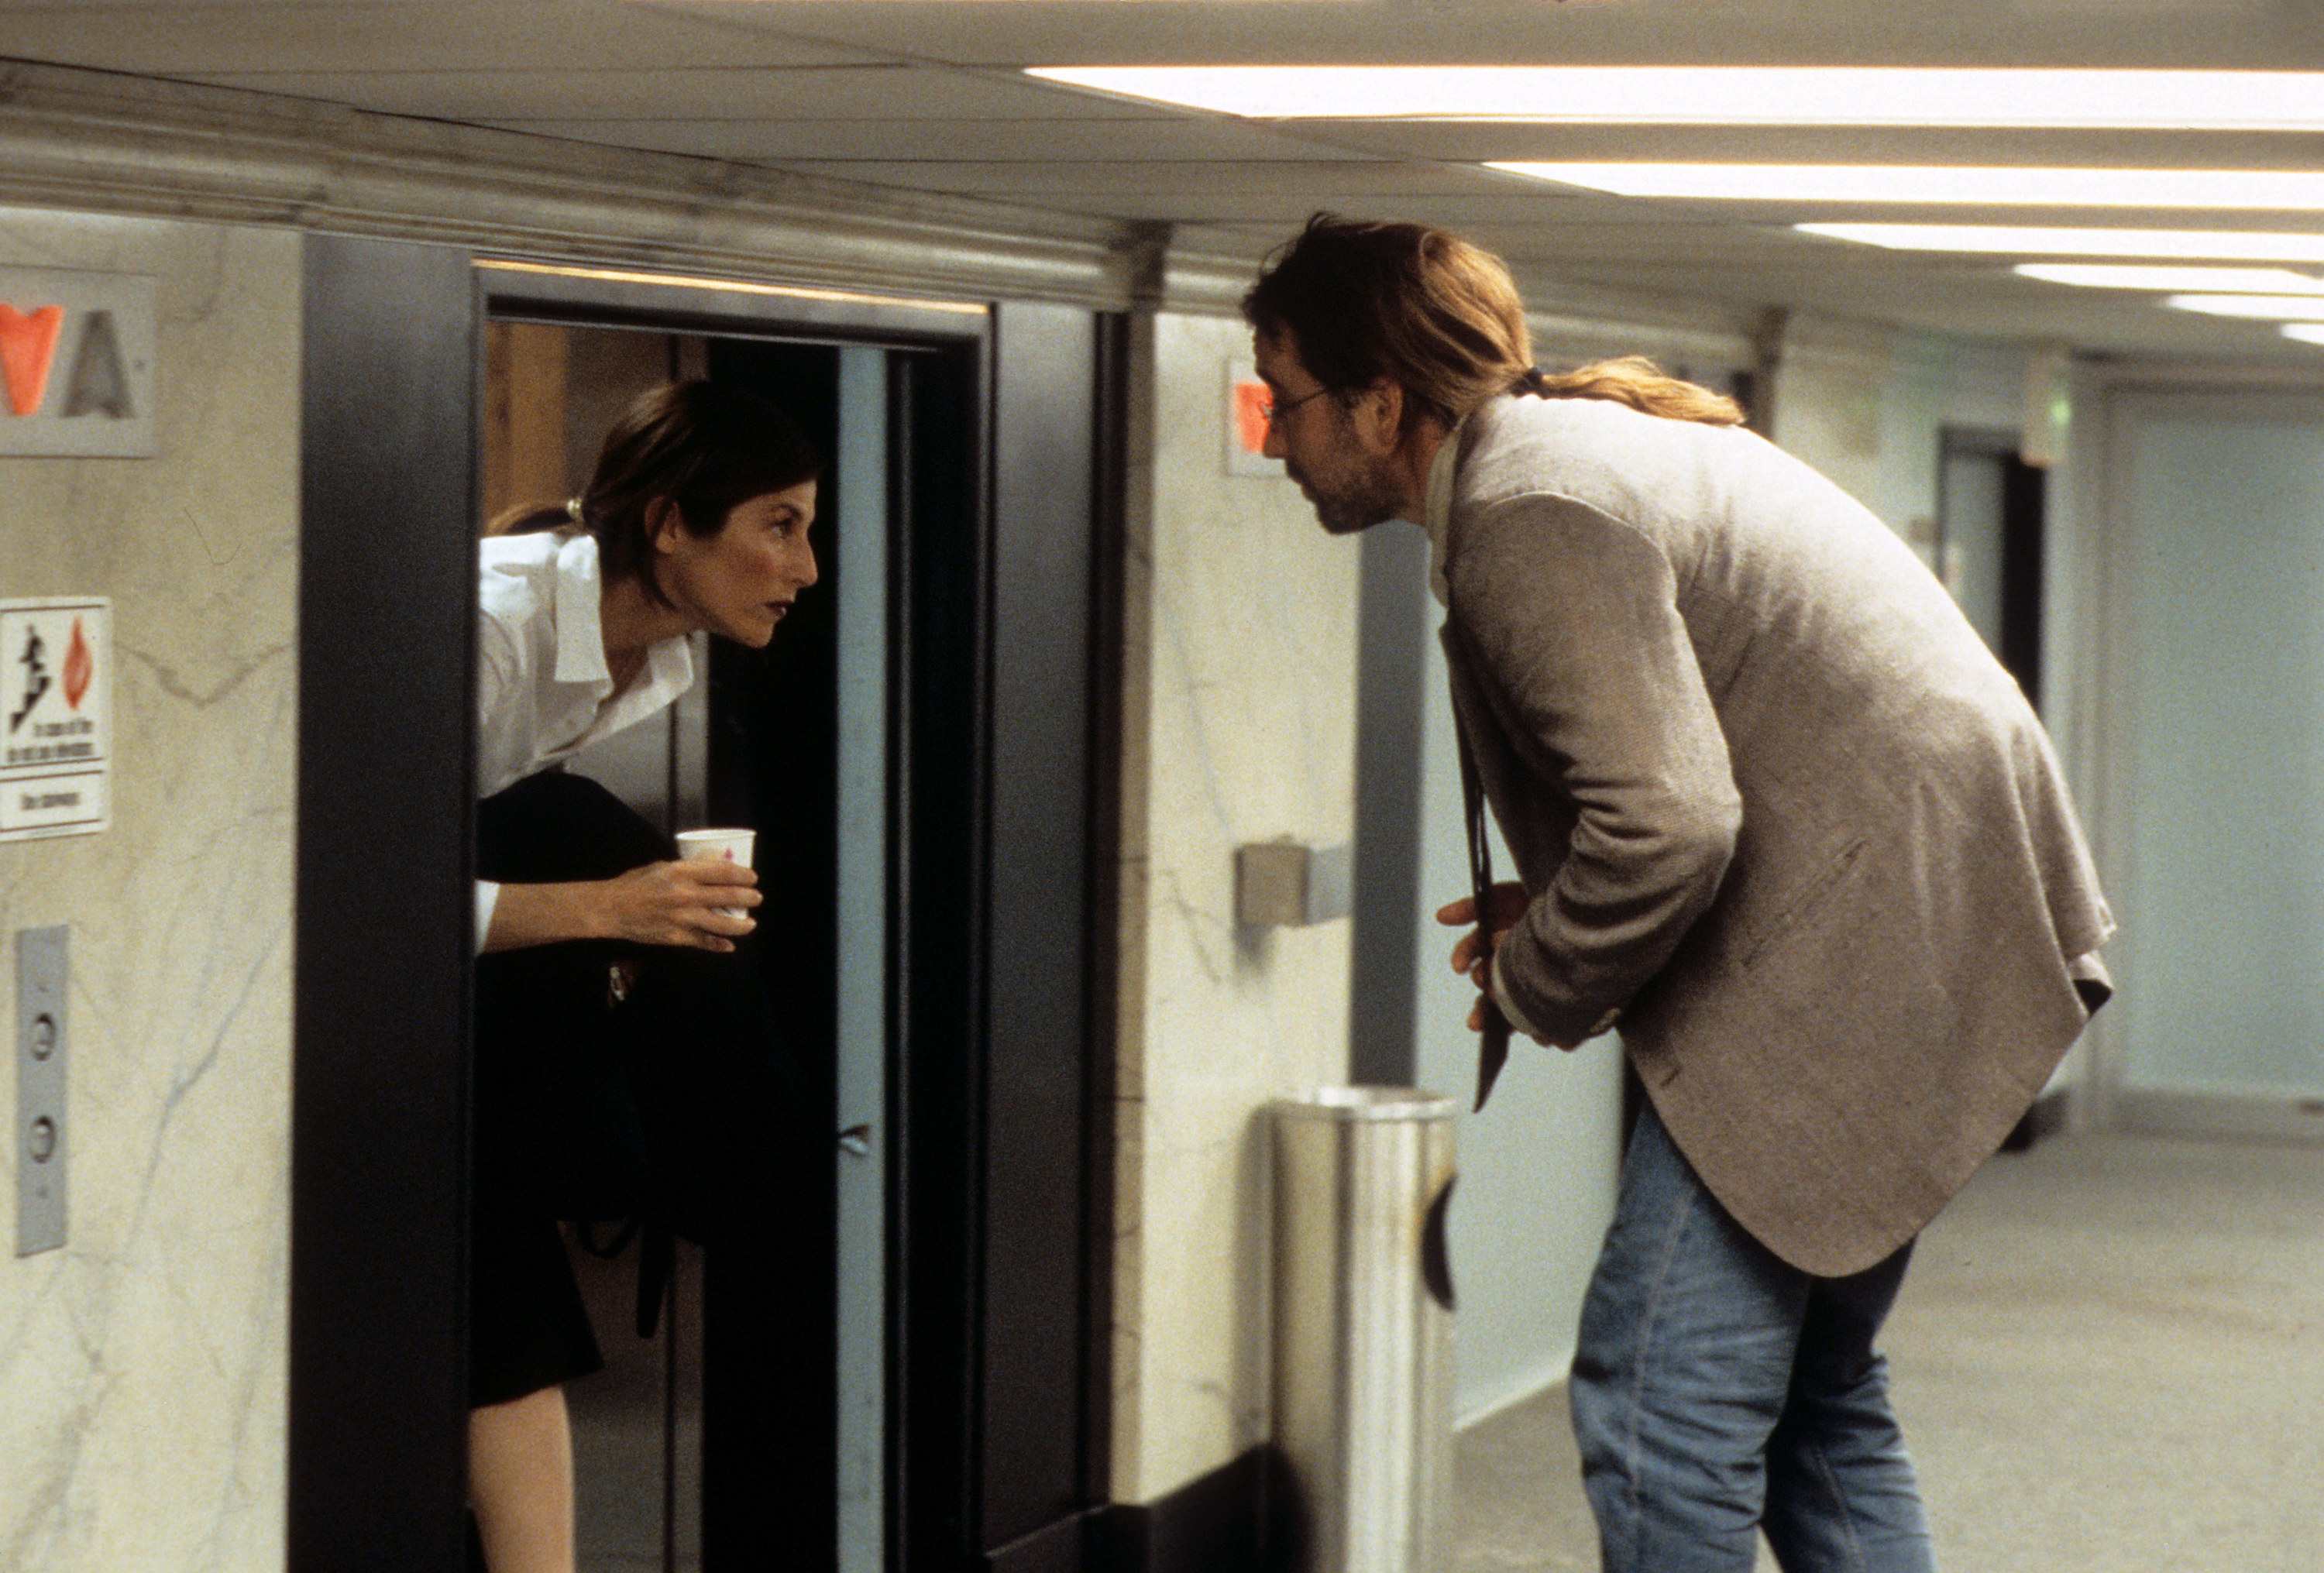 Two people looking at each other as one exits a tiny elevator